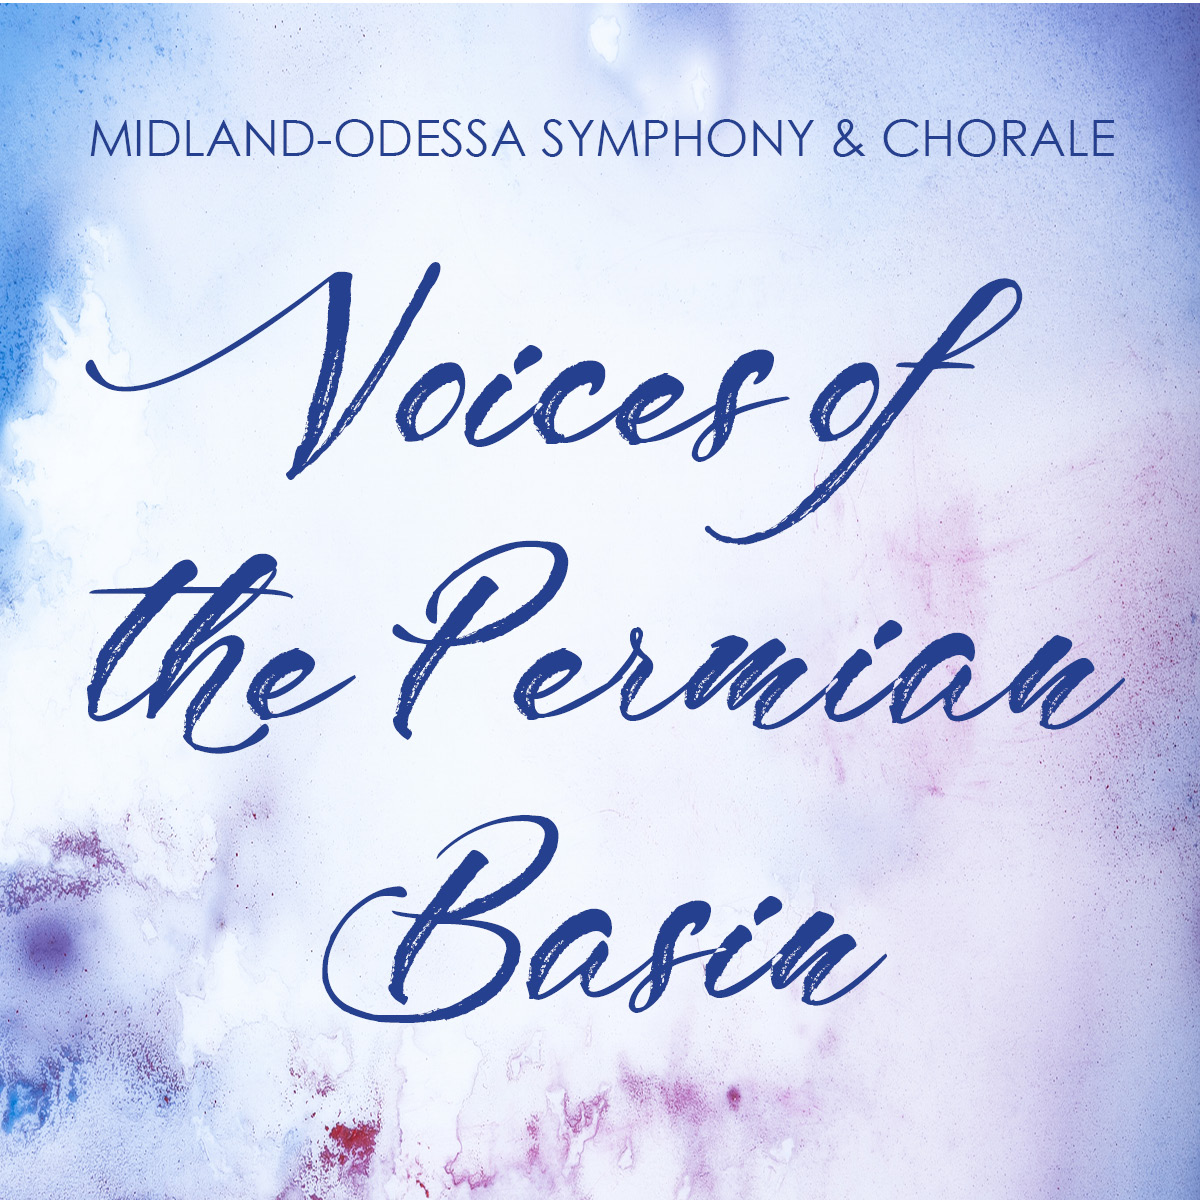 Image for THE BEST OF BROADWAY (MOSC VOICES OF THE PERMIAN BASIN)